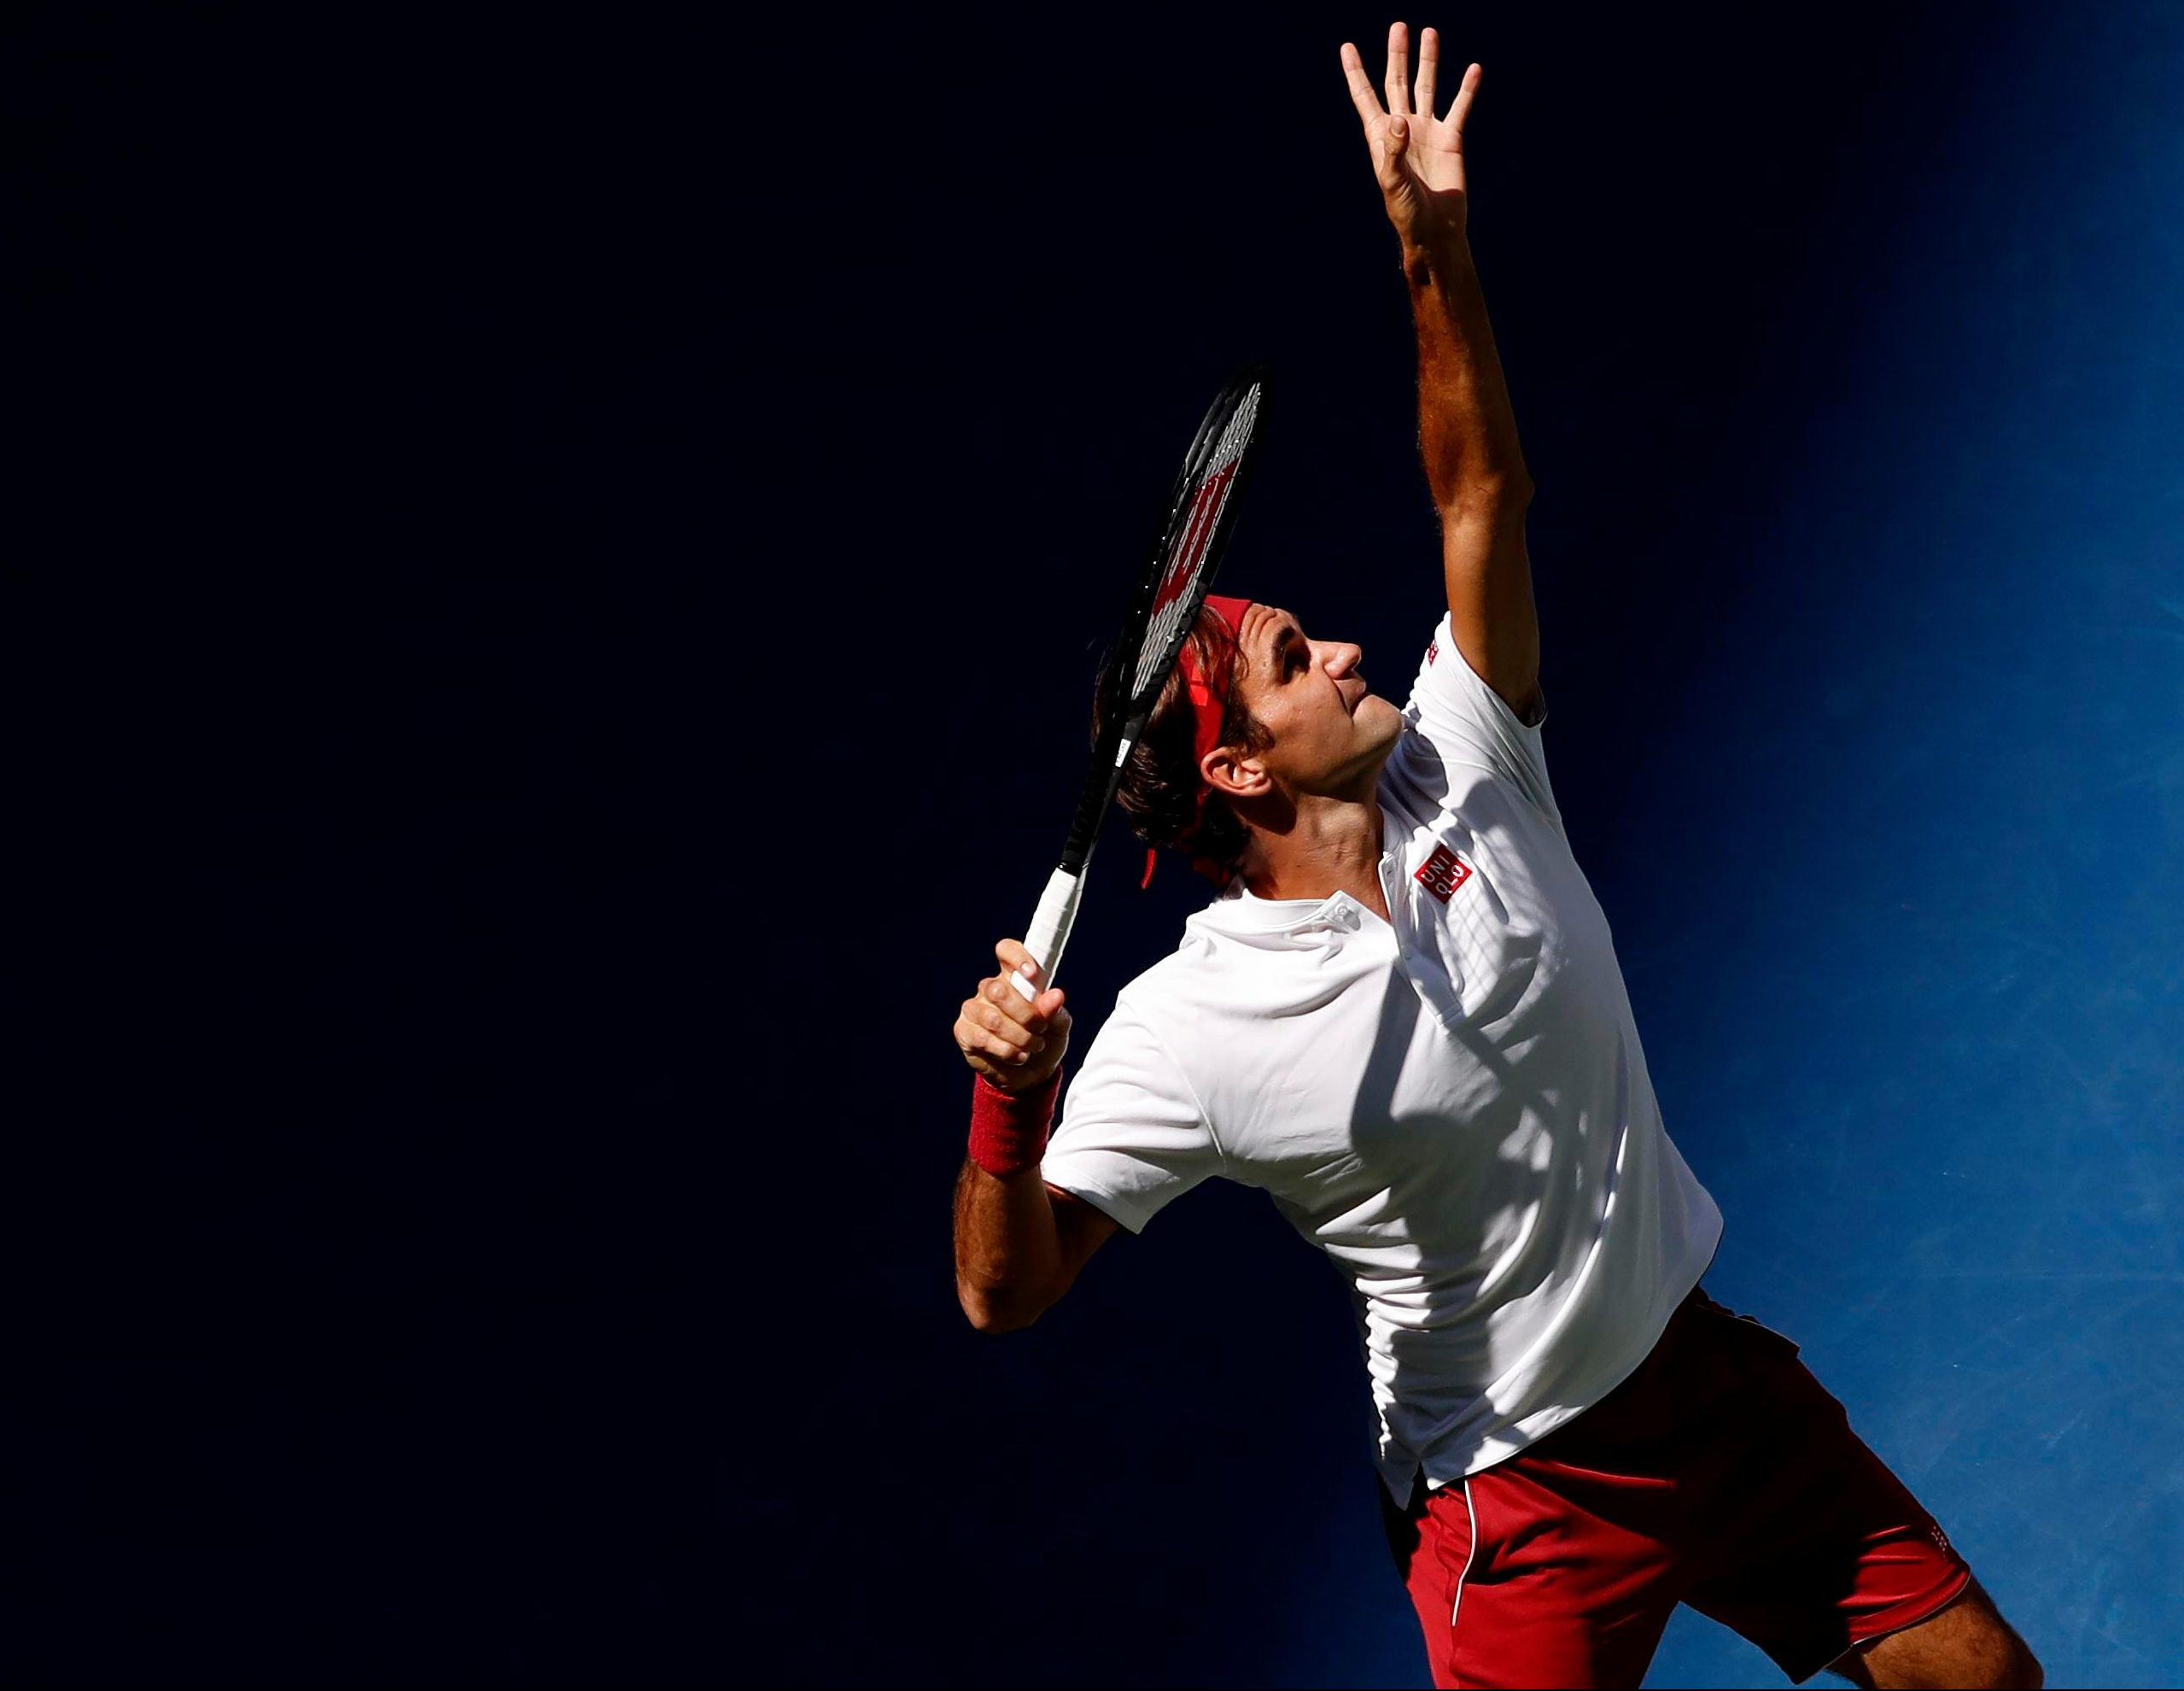 Federer produced an excellent, dominant performance on Arthur Ashe Stadium in the afternoon sun in New York